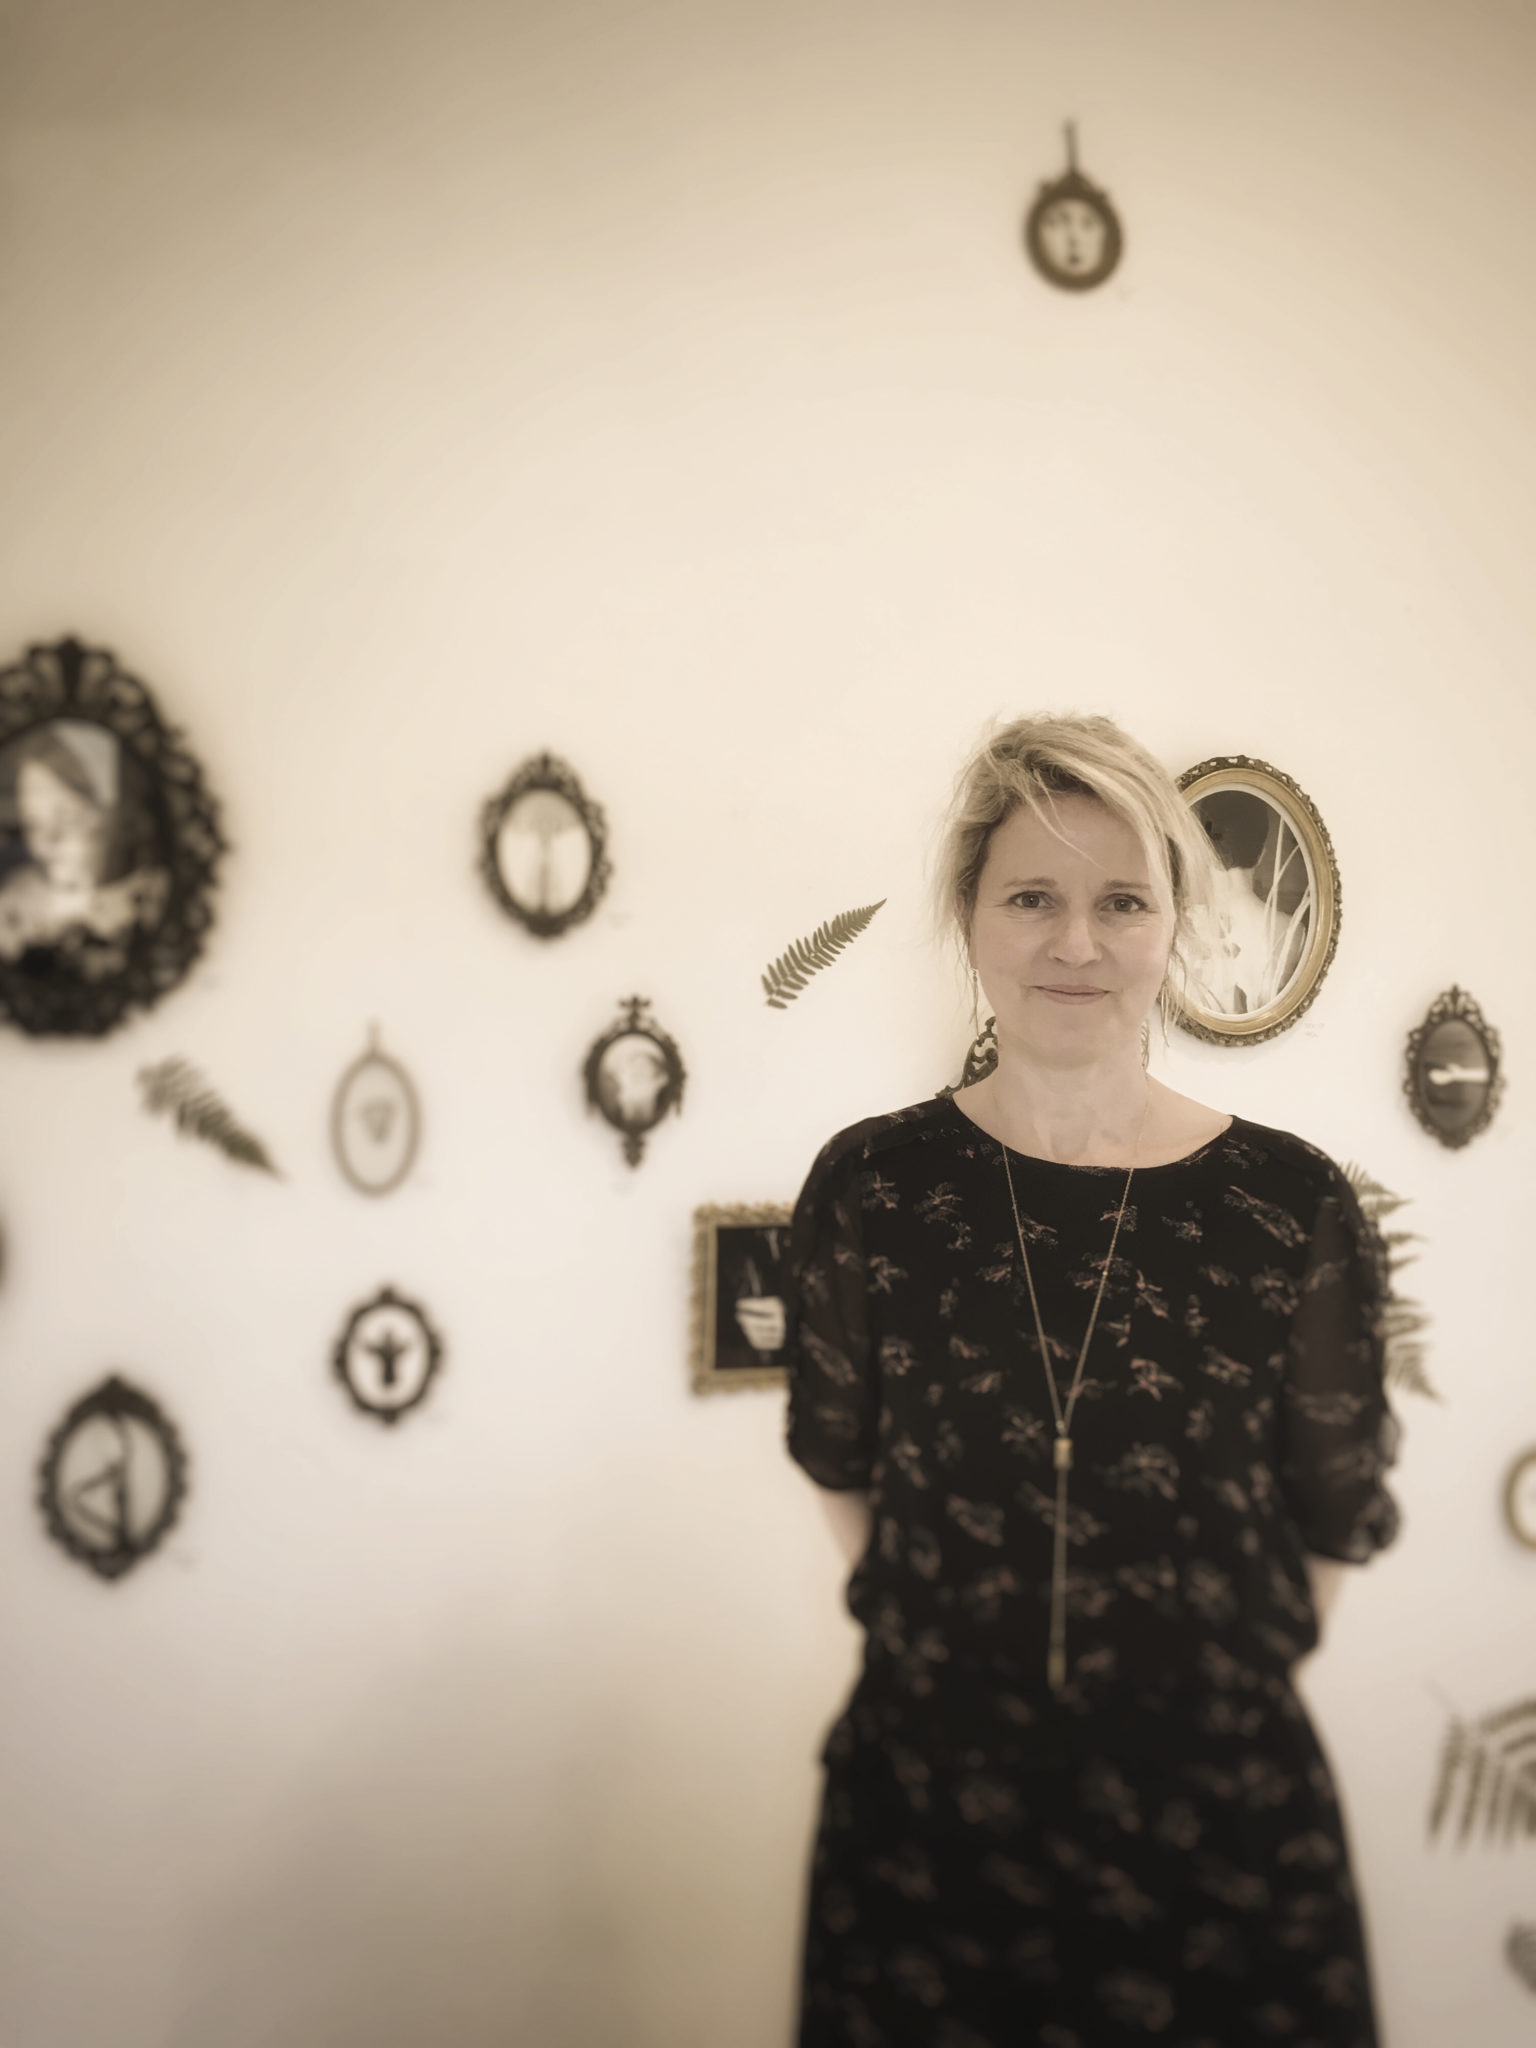 A woman stands in front of a wall full of small frames. She smiles graciously and has her arms around her back.